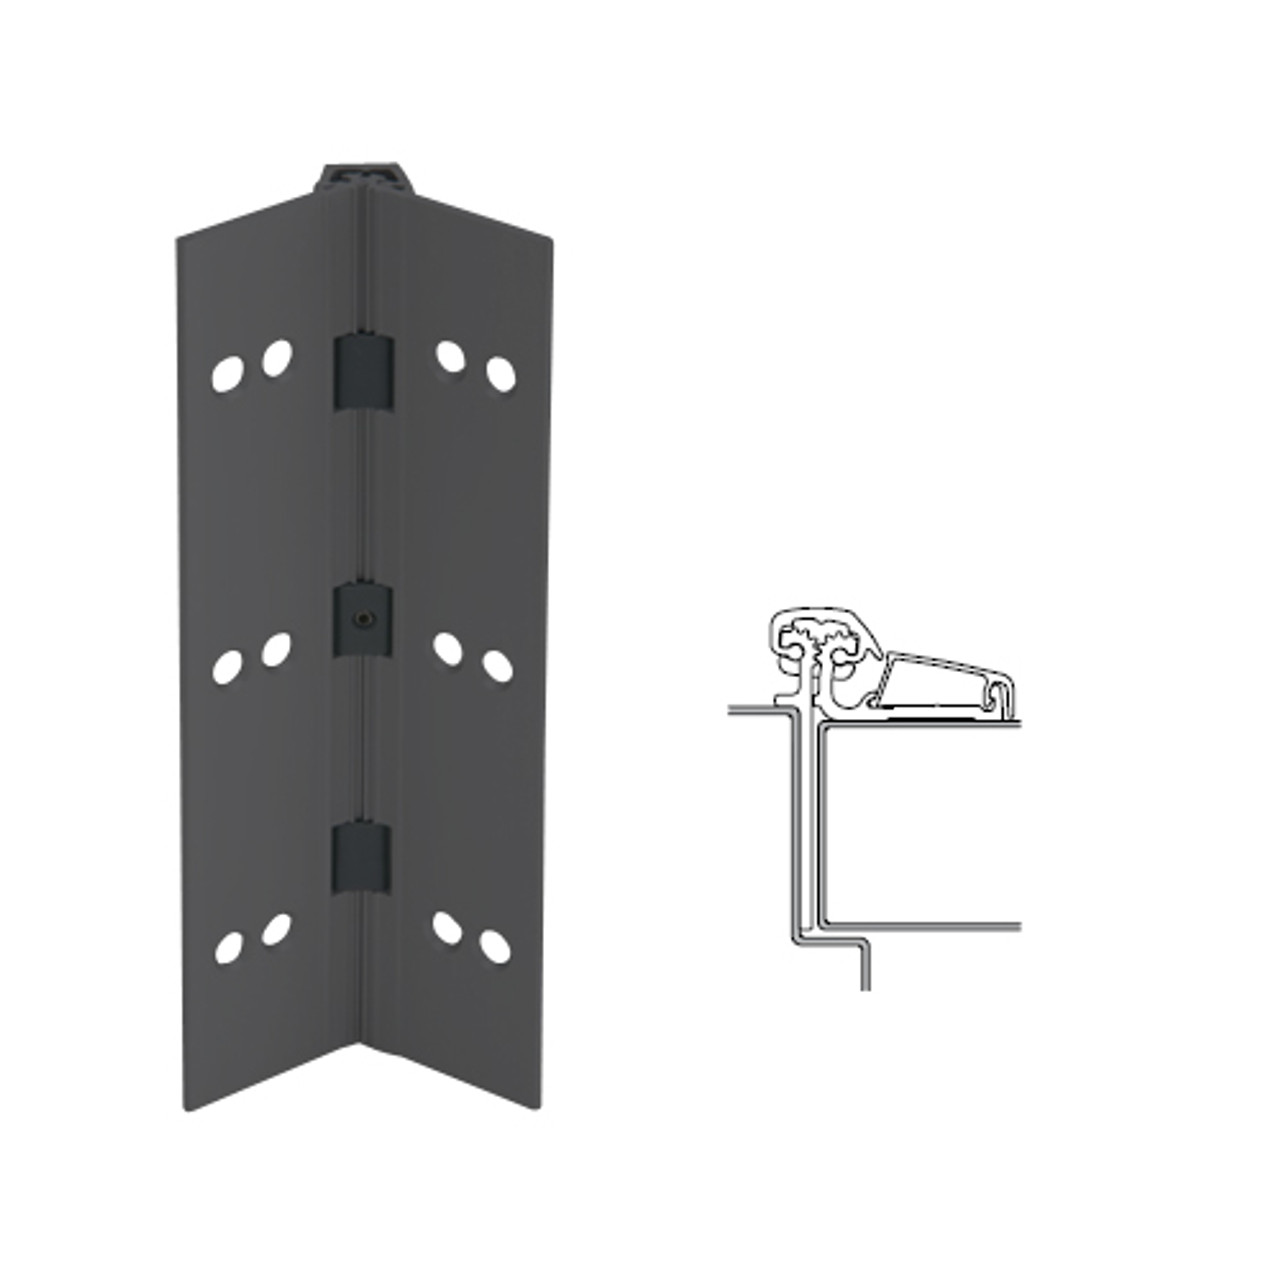 054XY-315AN-95-SECWDHM IVES Adjustable Half Surface Continuous Geared Hinges with Security Screws - Hex Pin Drive in Anodized Black